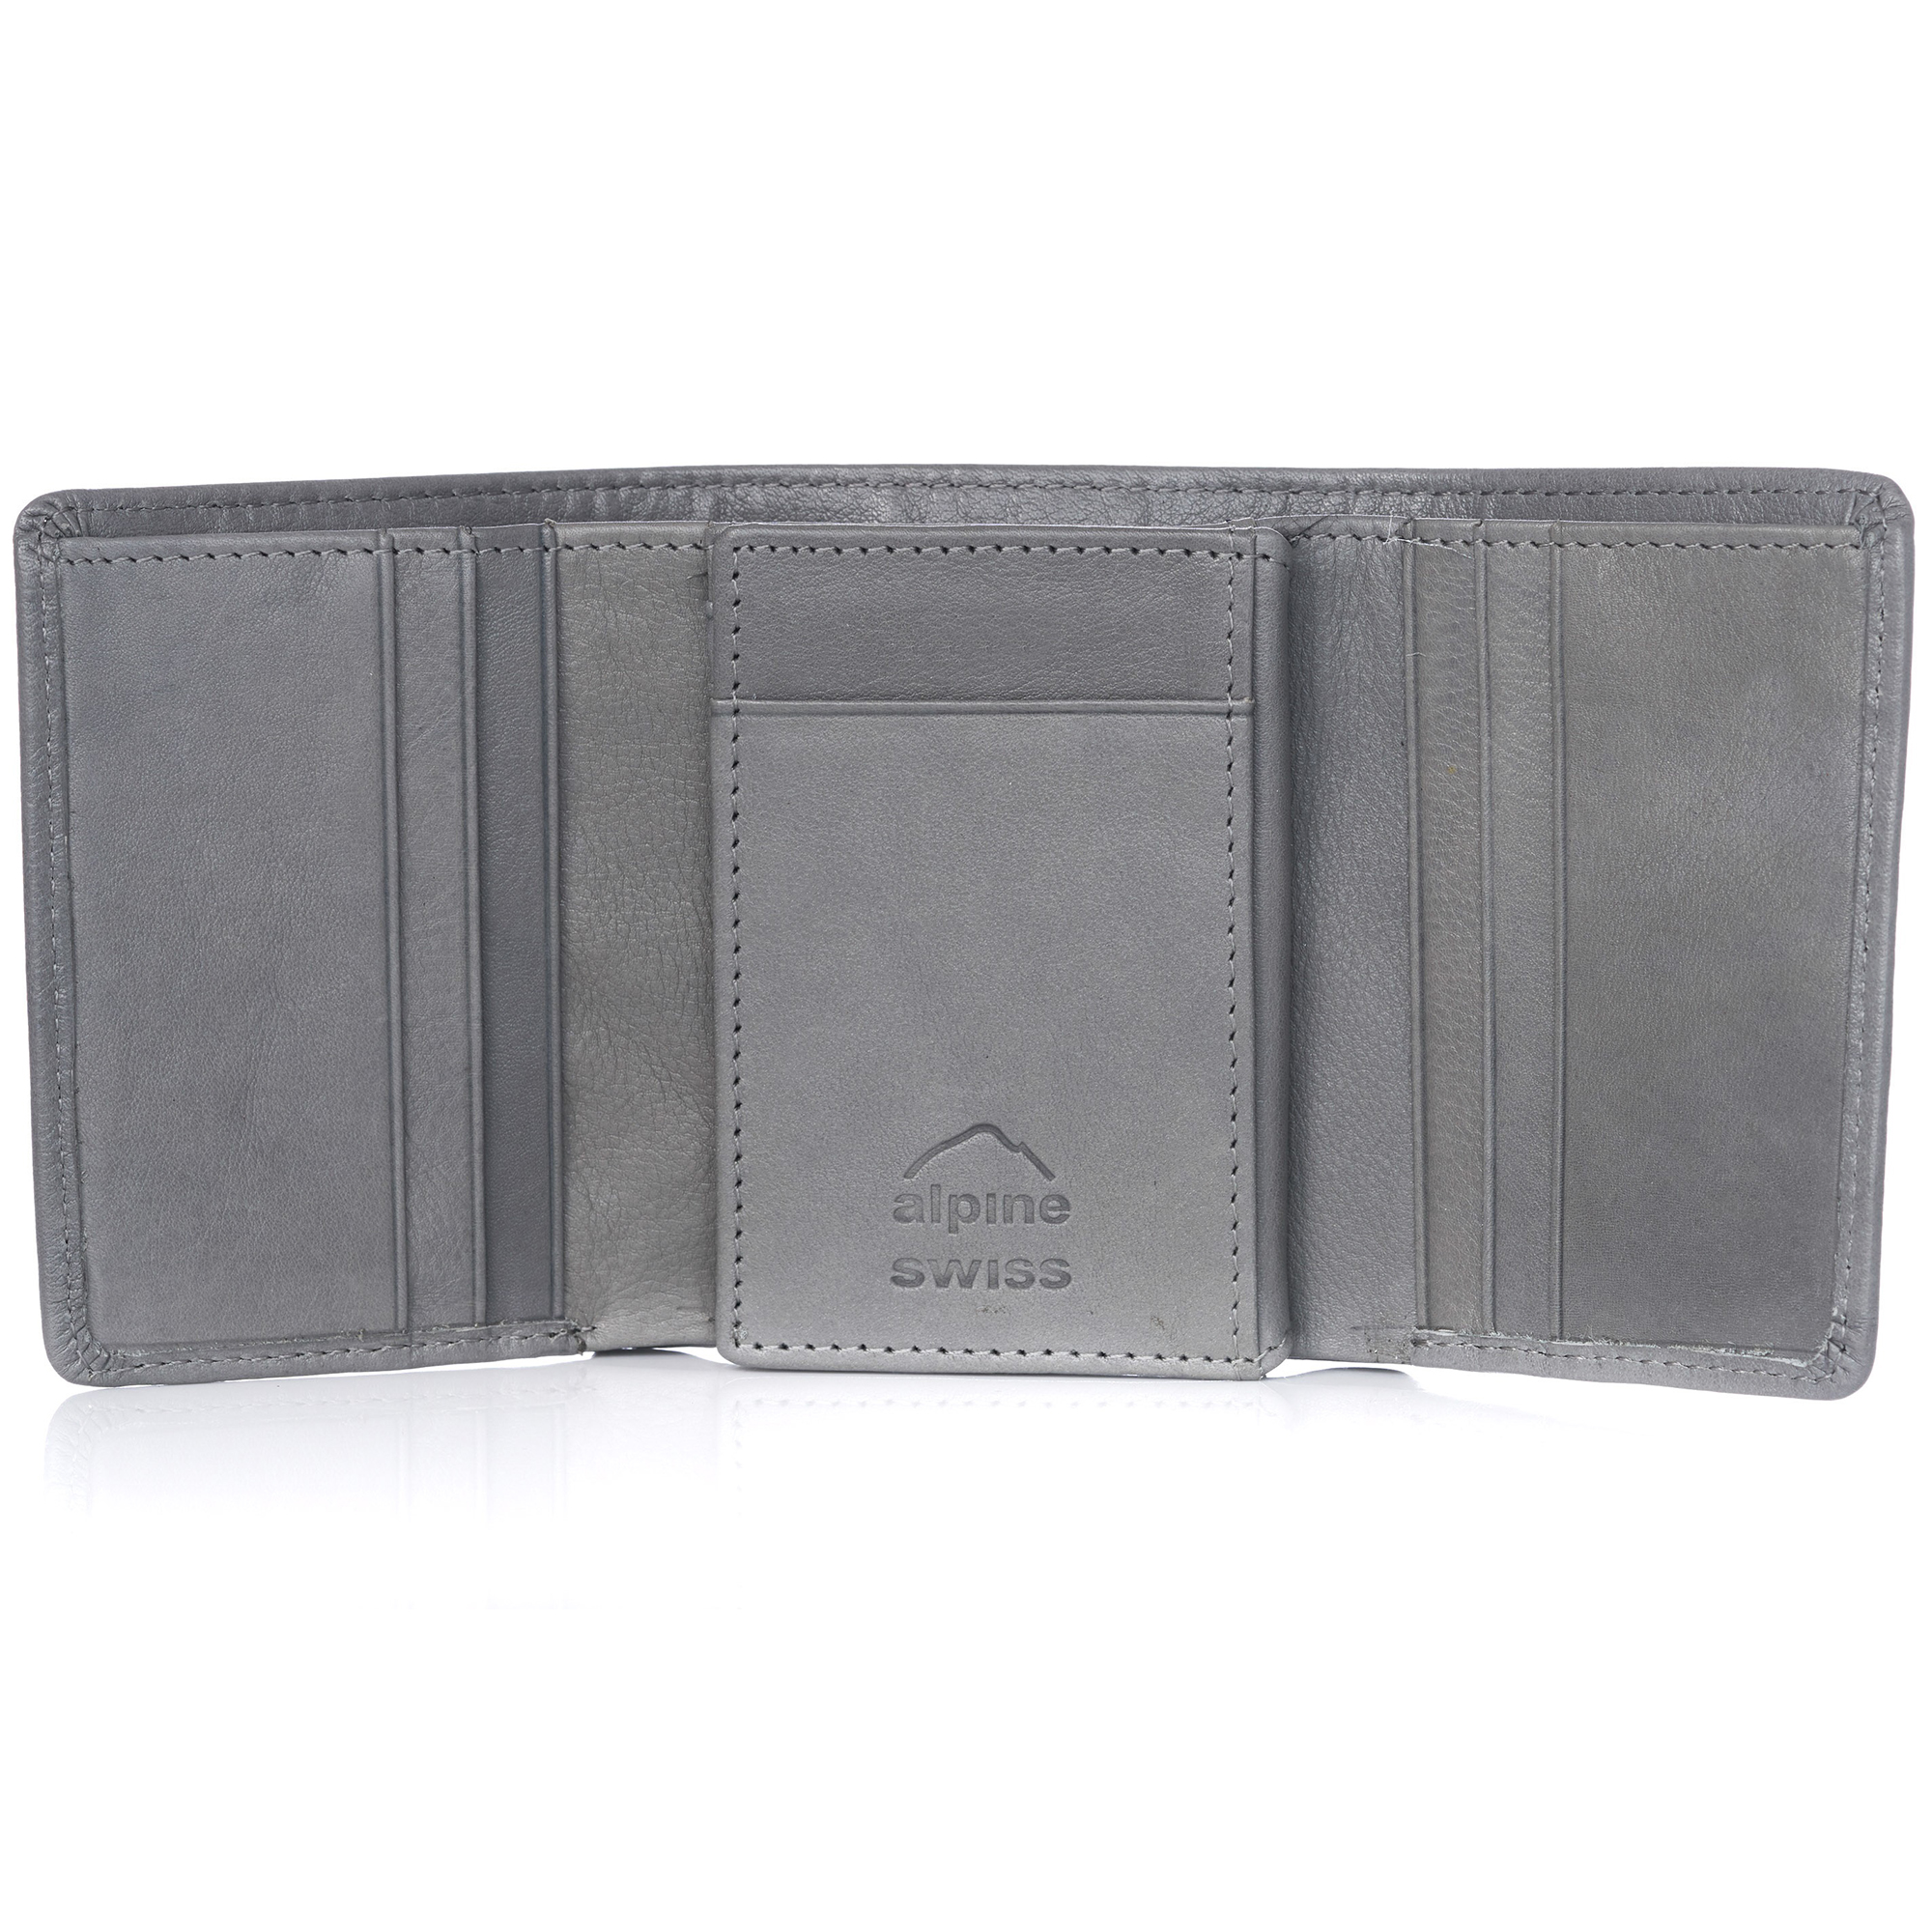 Alpine-Swiss-RFID-Mens-Wallet-Deluxe-Capacity-Trifold-With-Divided-Bill-Section thumbnail 104